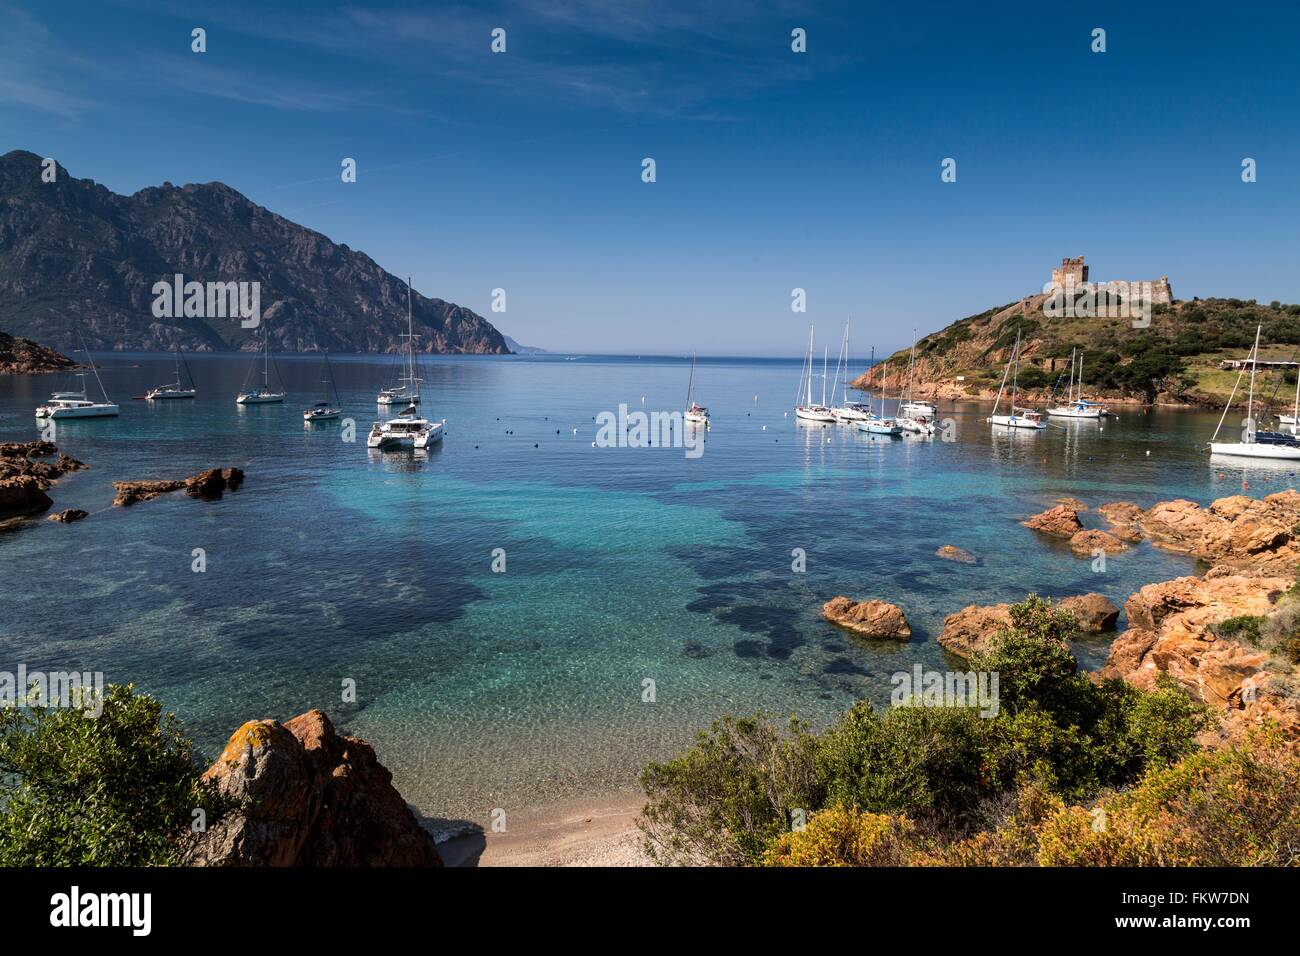 Elevated view   yachts anchored in bay, Girolata, Corsica, France - Stock Image